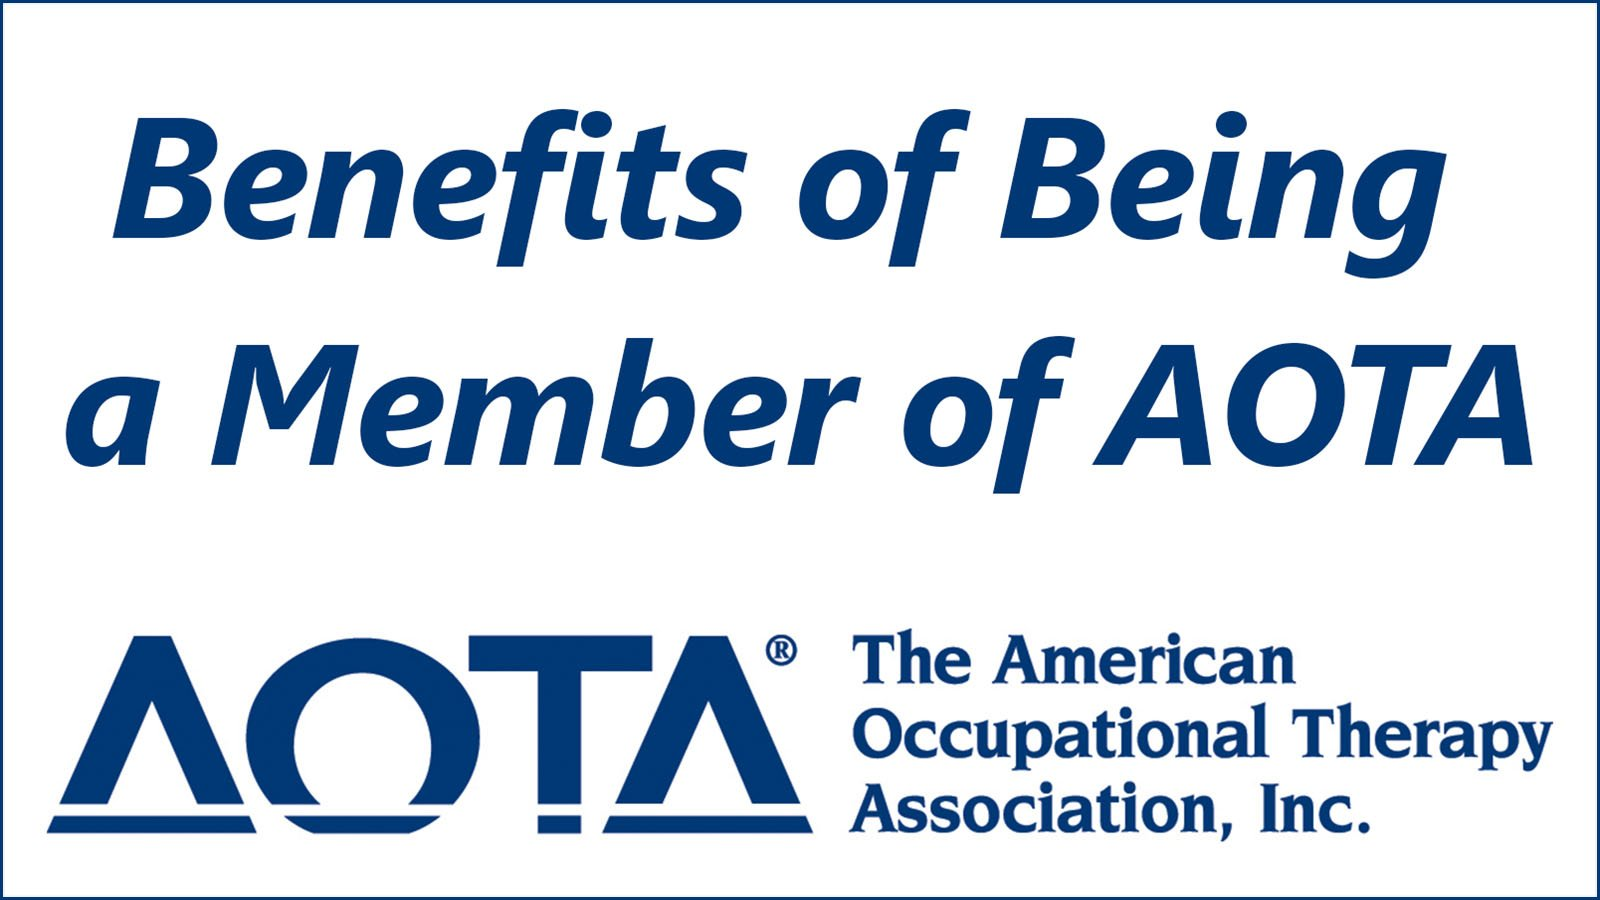 benefits of being a member of AOTA